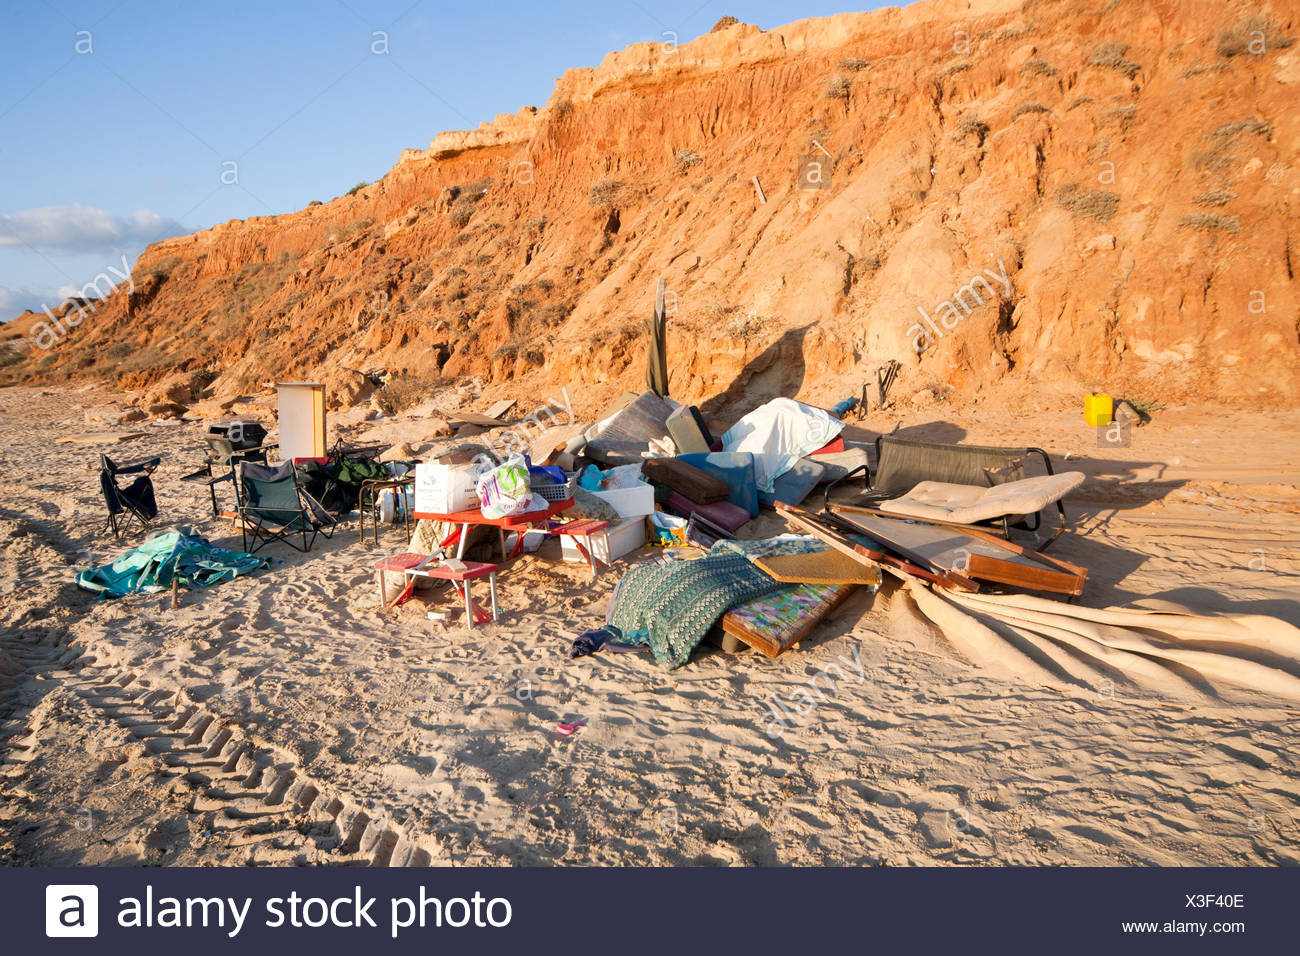 Garbage and waste left by holiday makers on a beach. Photographed in Israel - Stock Image